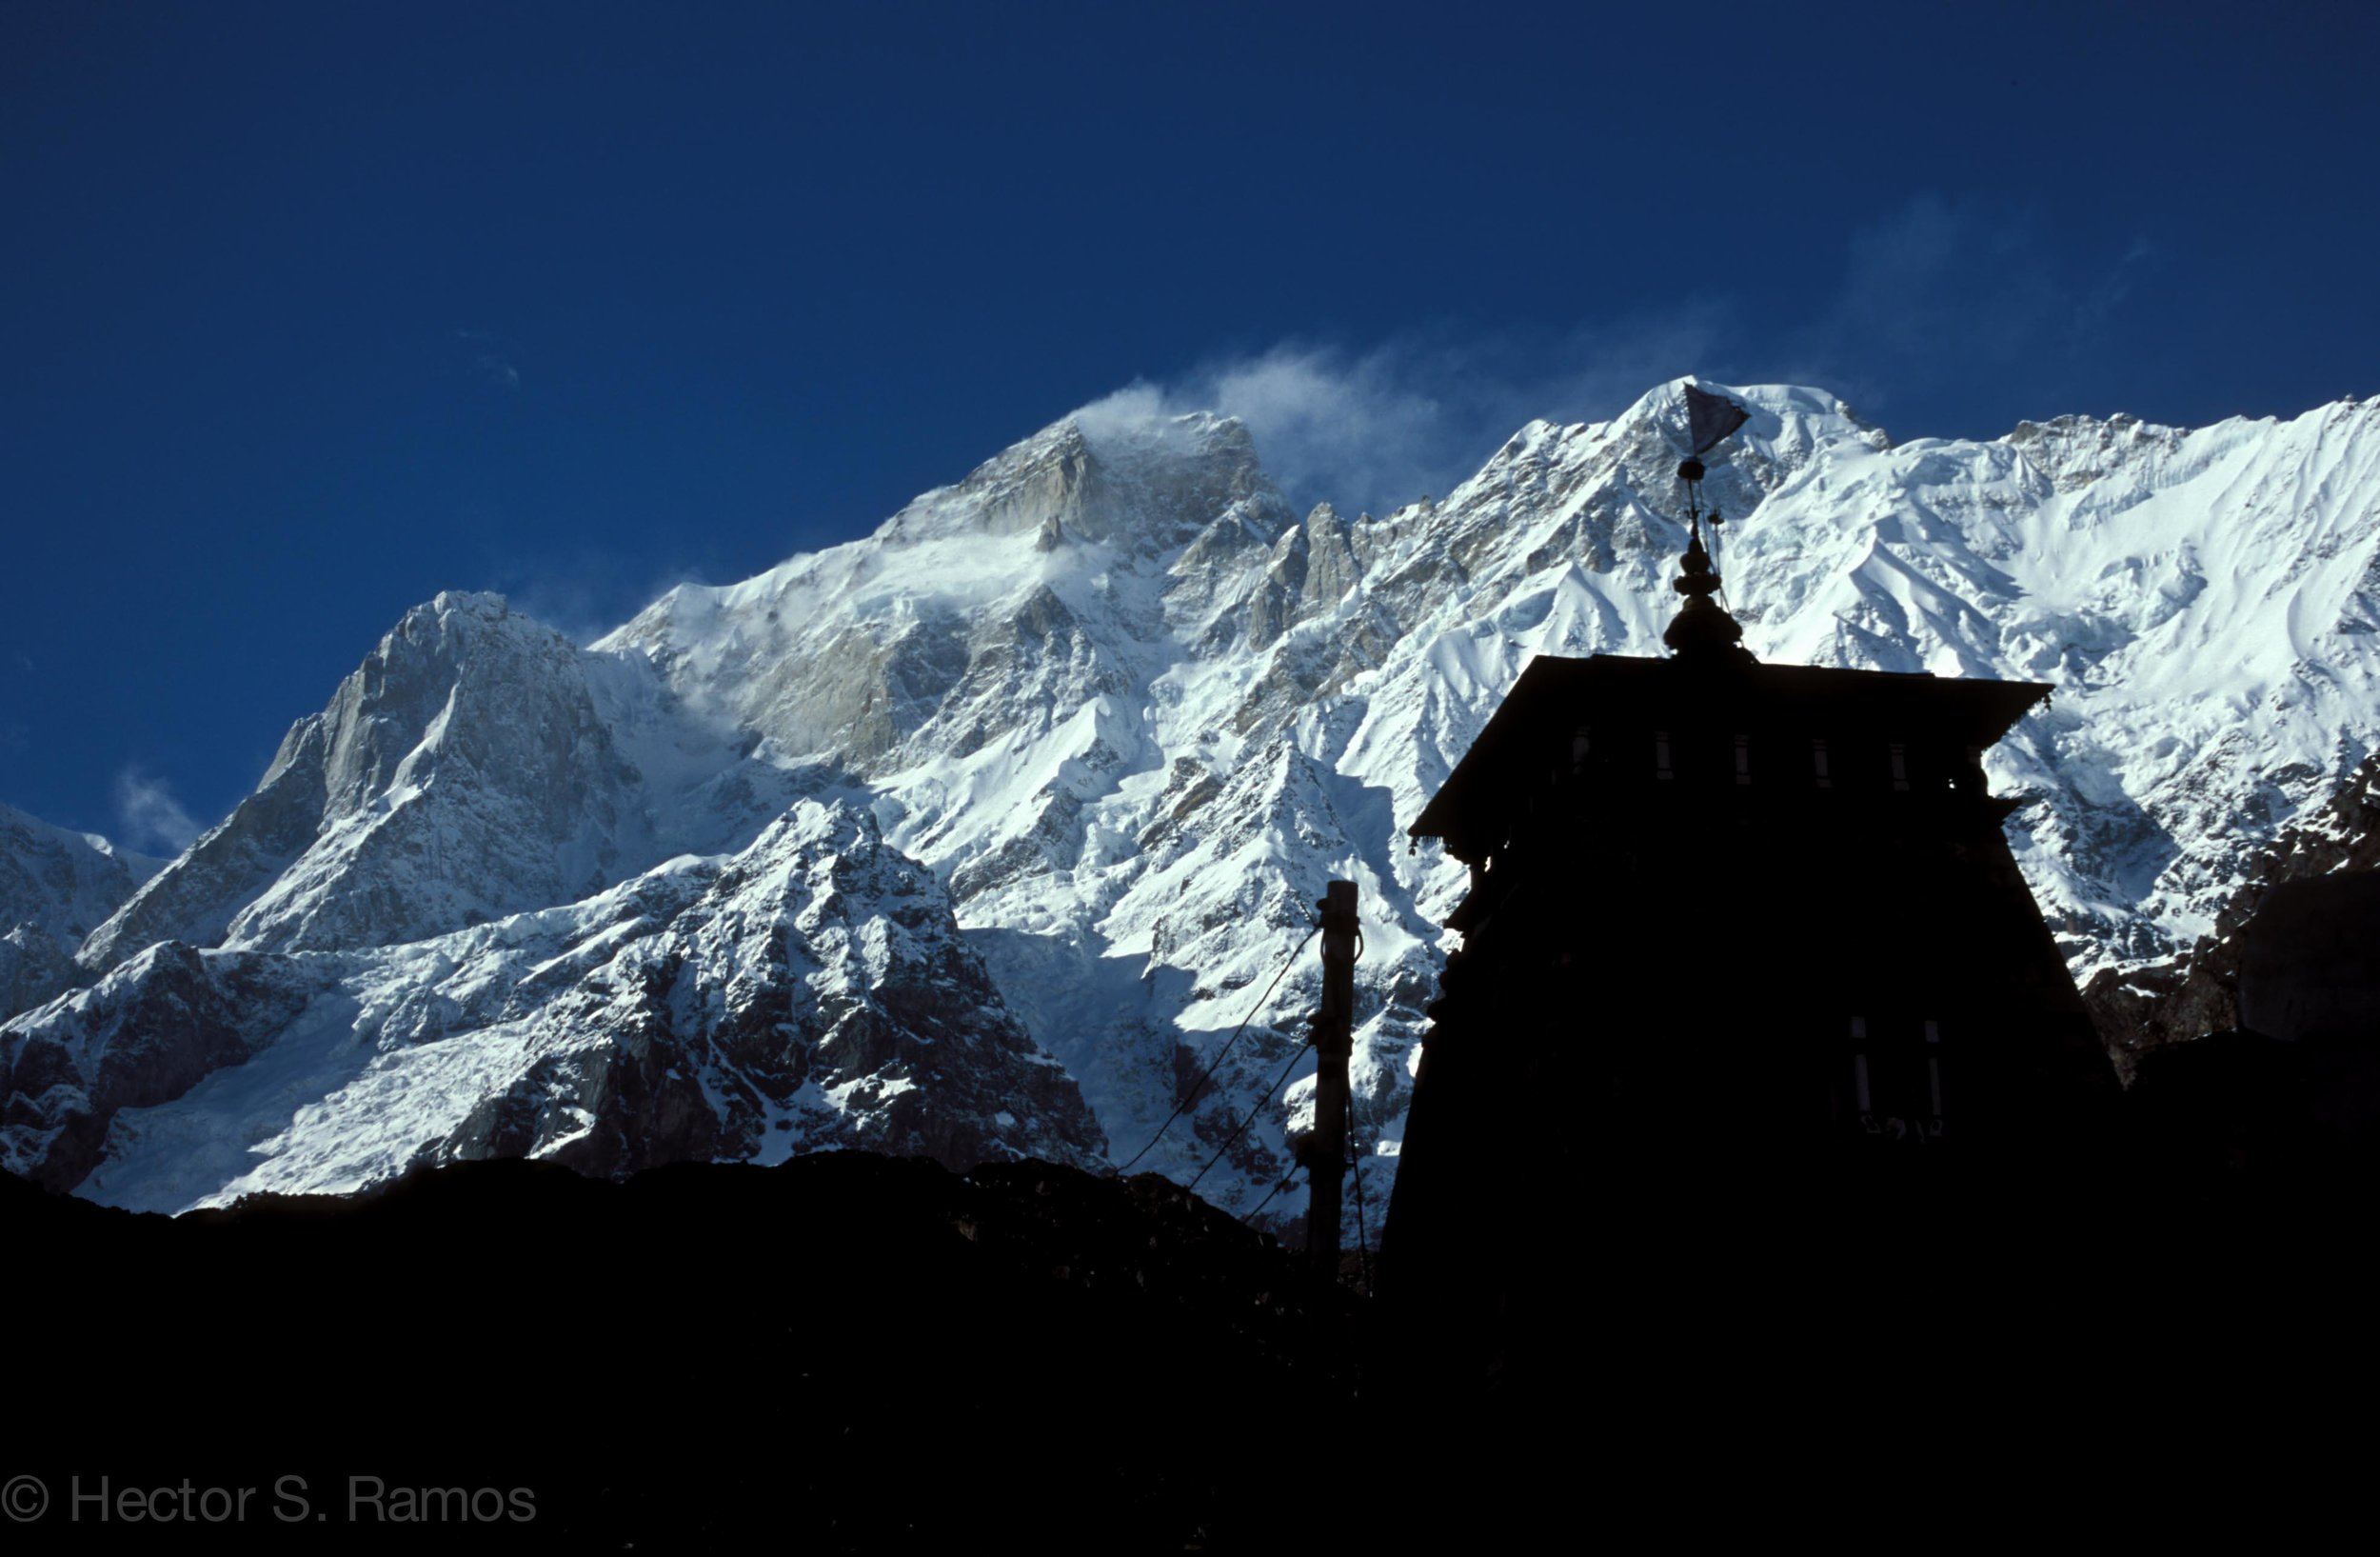 Kedarnath Shrine.  After a seven-hour trek we were rewarded with a magnificent view.  Photo: Leica MP, 50mm Summilux, Velvia 50.